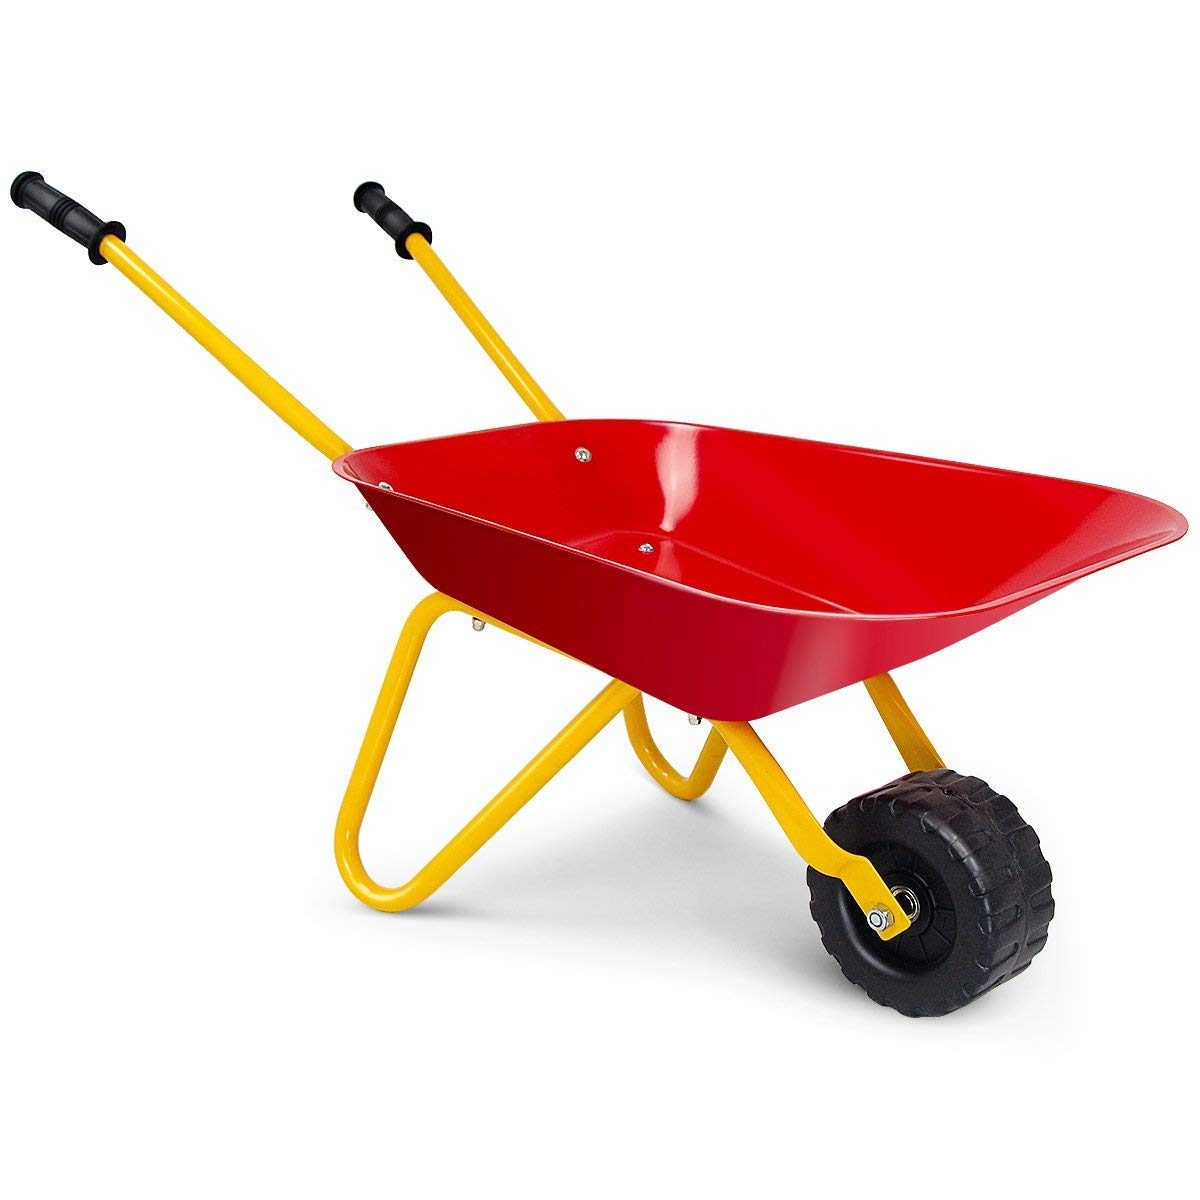 HAPPYGRILL Kids Wheelbarrow, Yard Rover Steel Tray, Metal Construction Toys Kart, Tote Dirt/Leaves/Tools in Garden for Toddlers, Kids Play Tools (red) by HAPPYGRILL (Image #1)